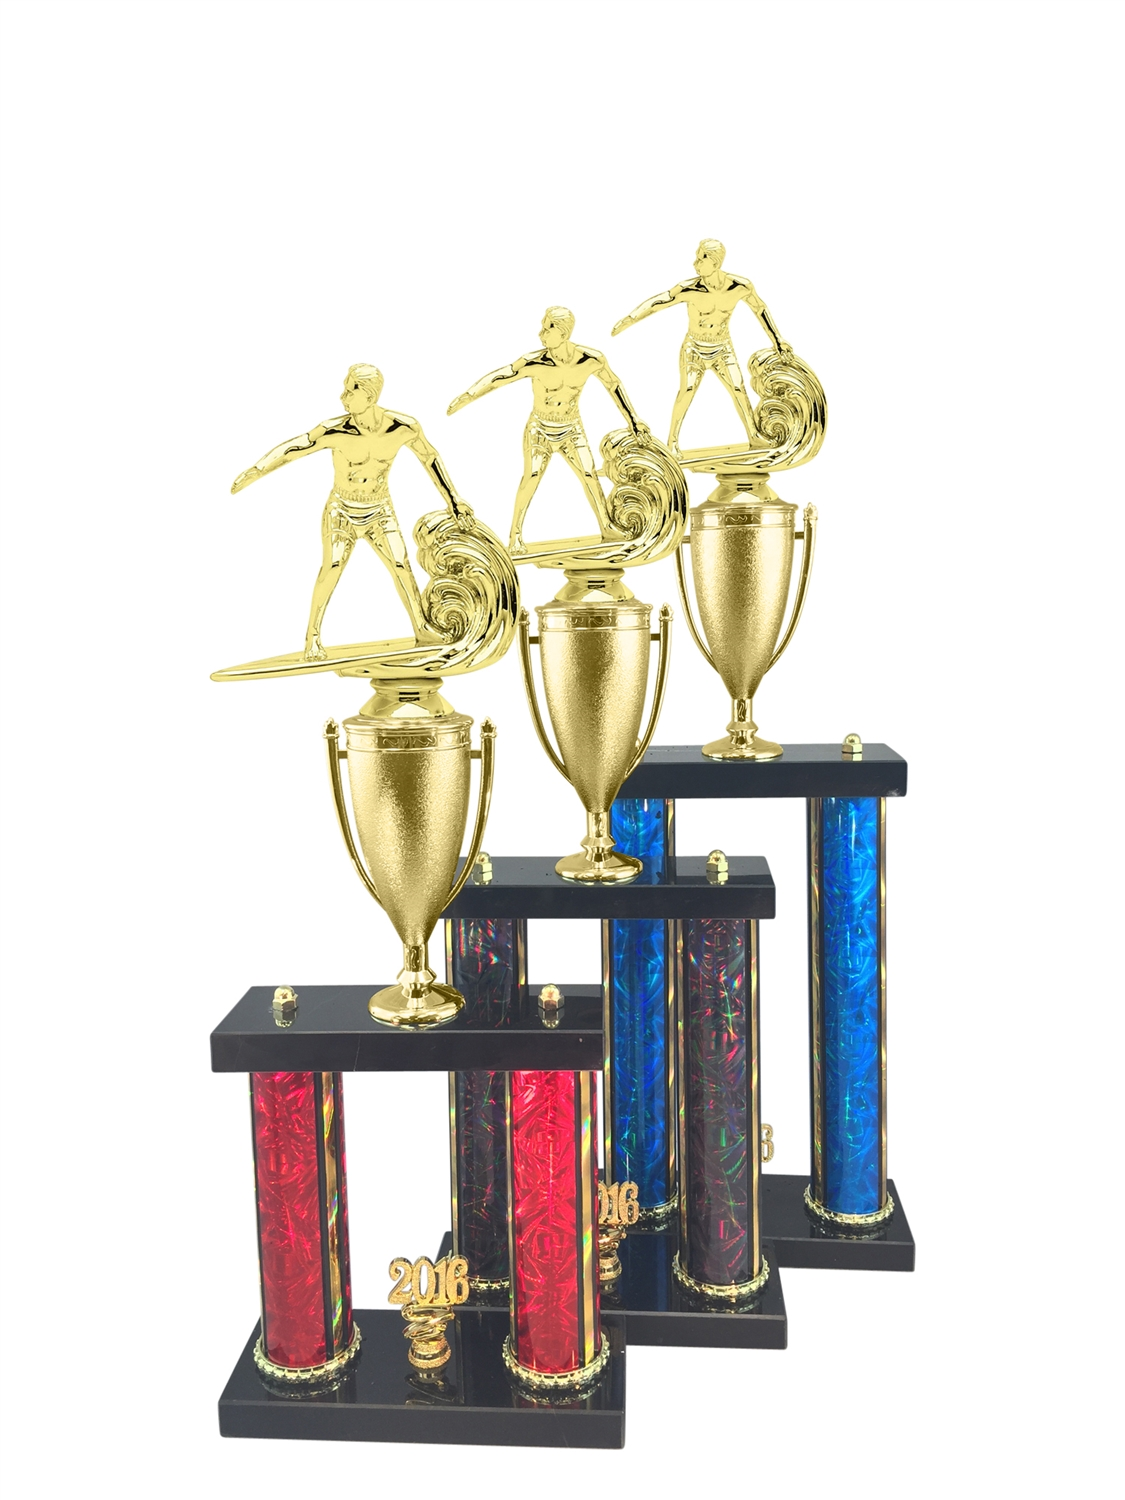 Surfing Trophy Available in 11 Color & 3 Size Options